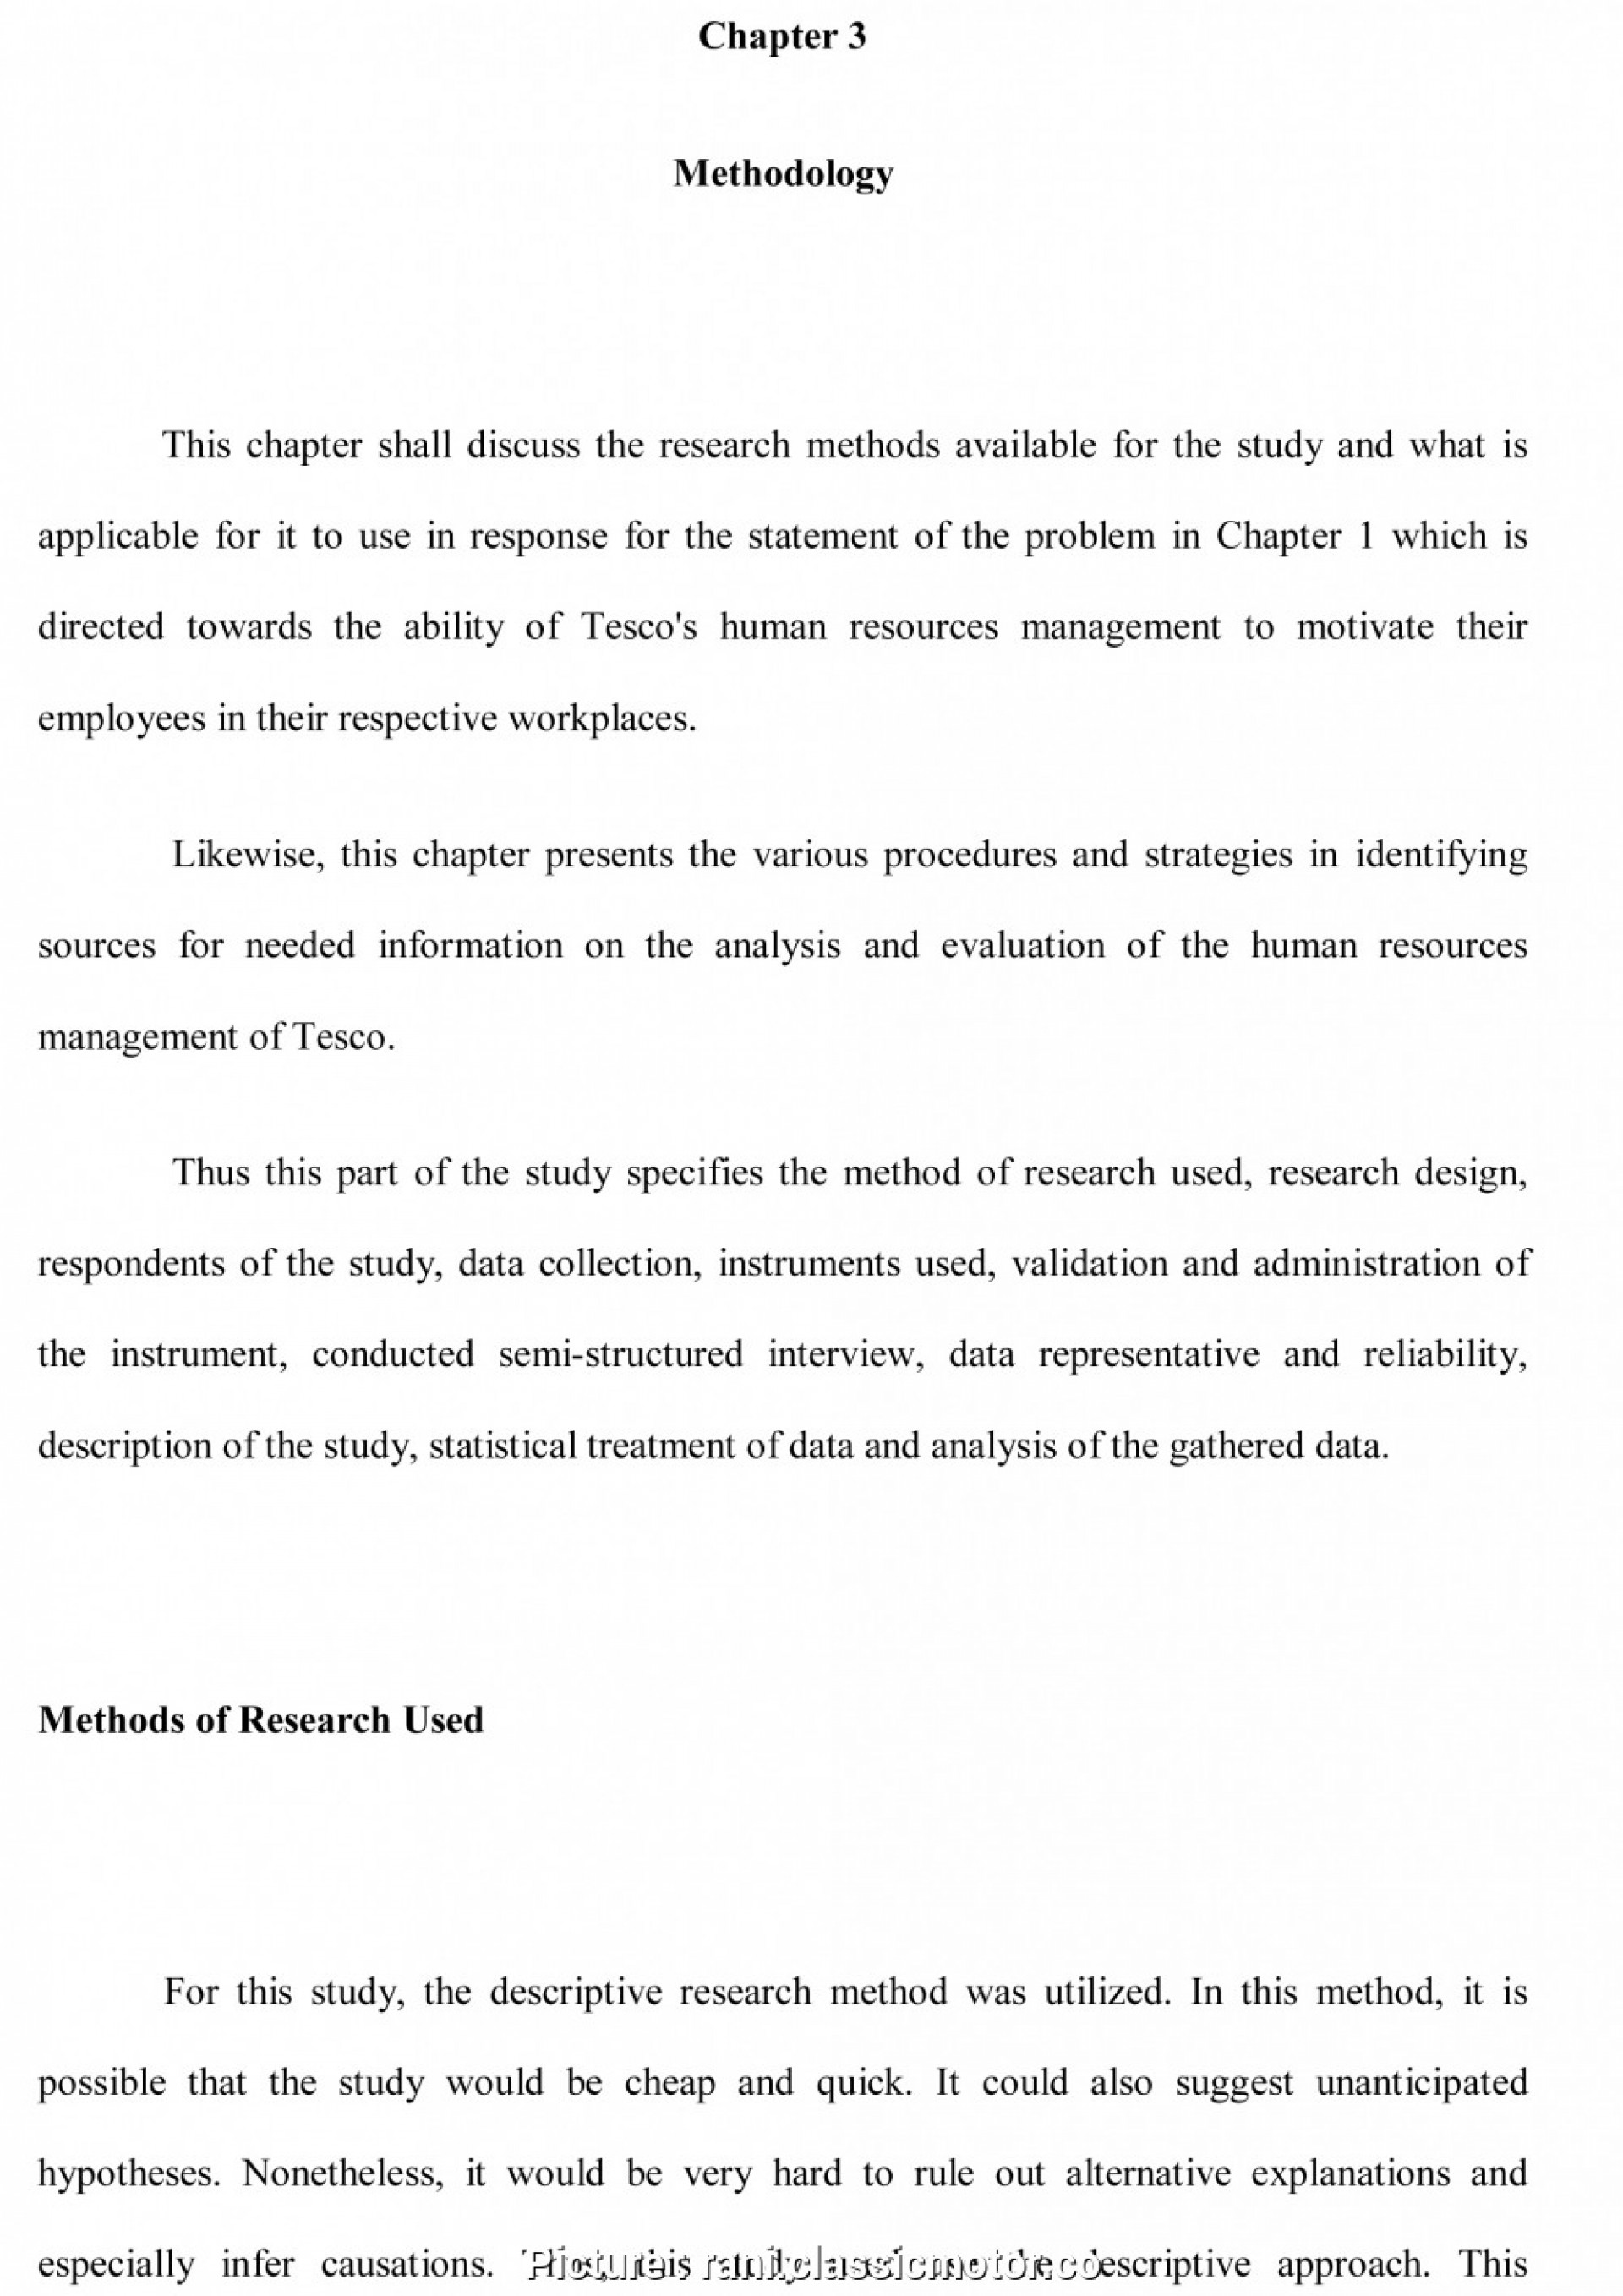 sample business proposal methodology essay examples to